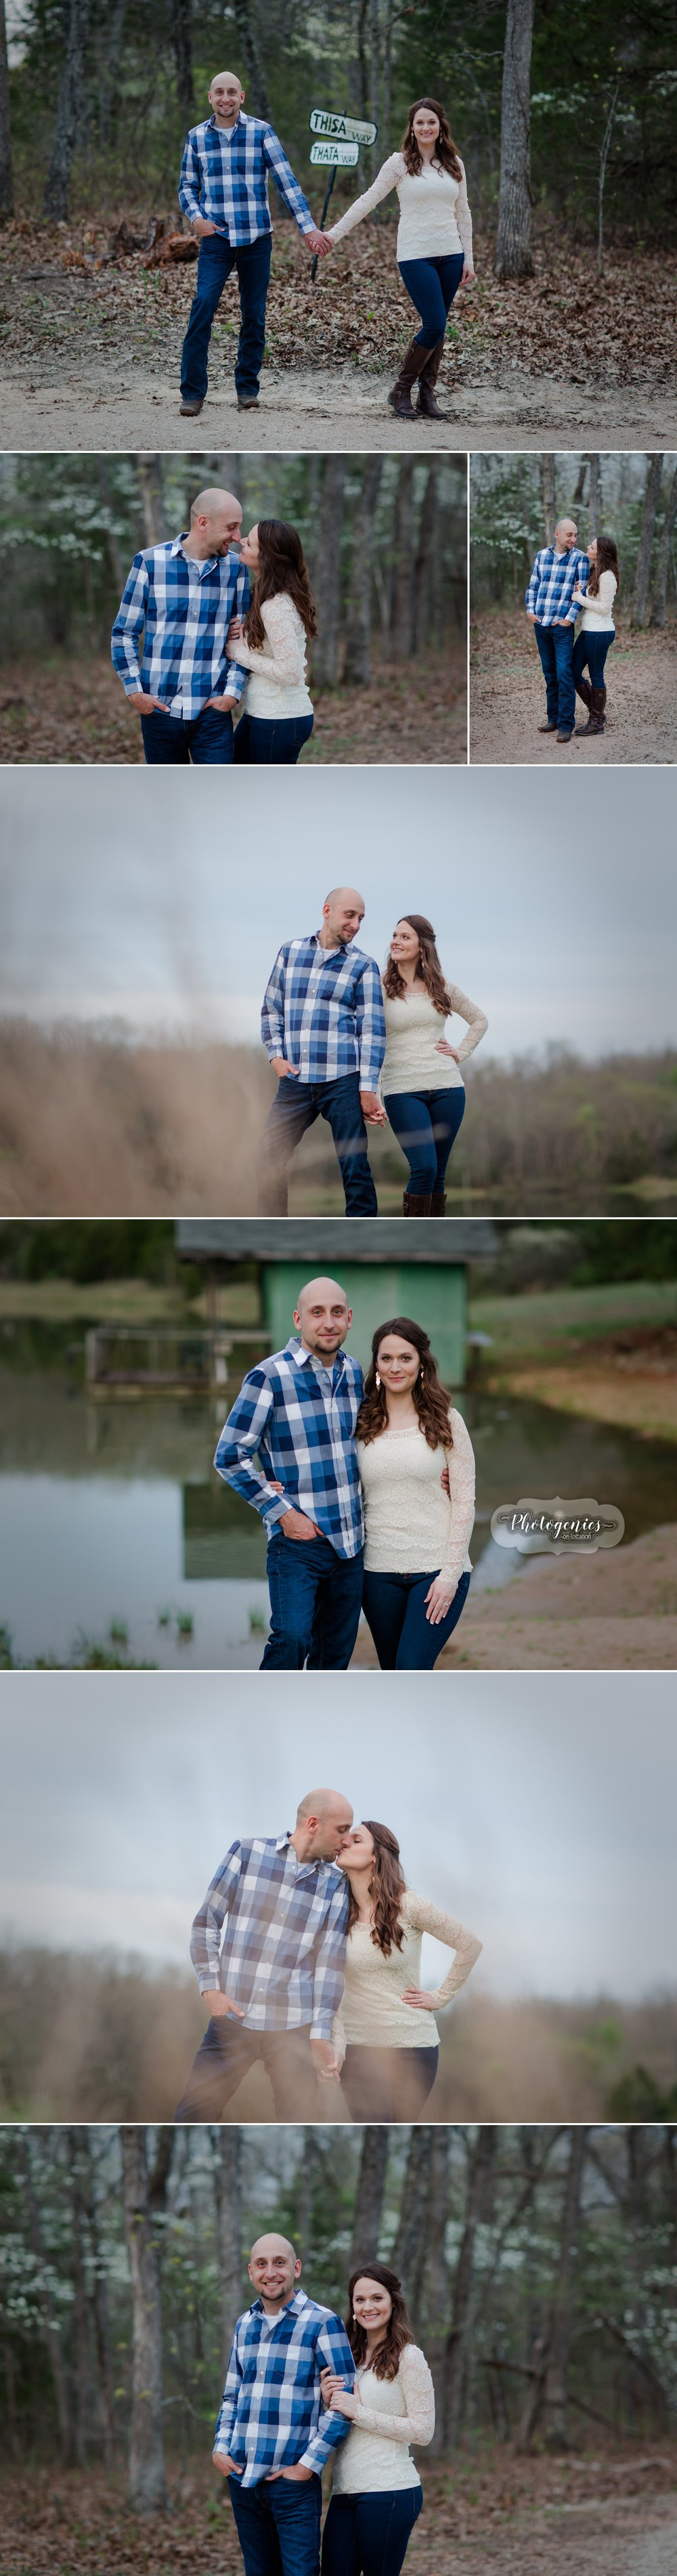 engagement_session_spring_country_creek_water_poses_evening_light_lake_sunset_ideas_simple_variety_unique_couples_photography